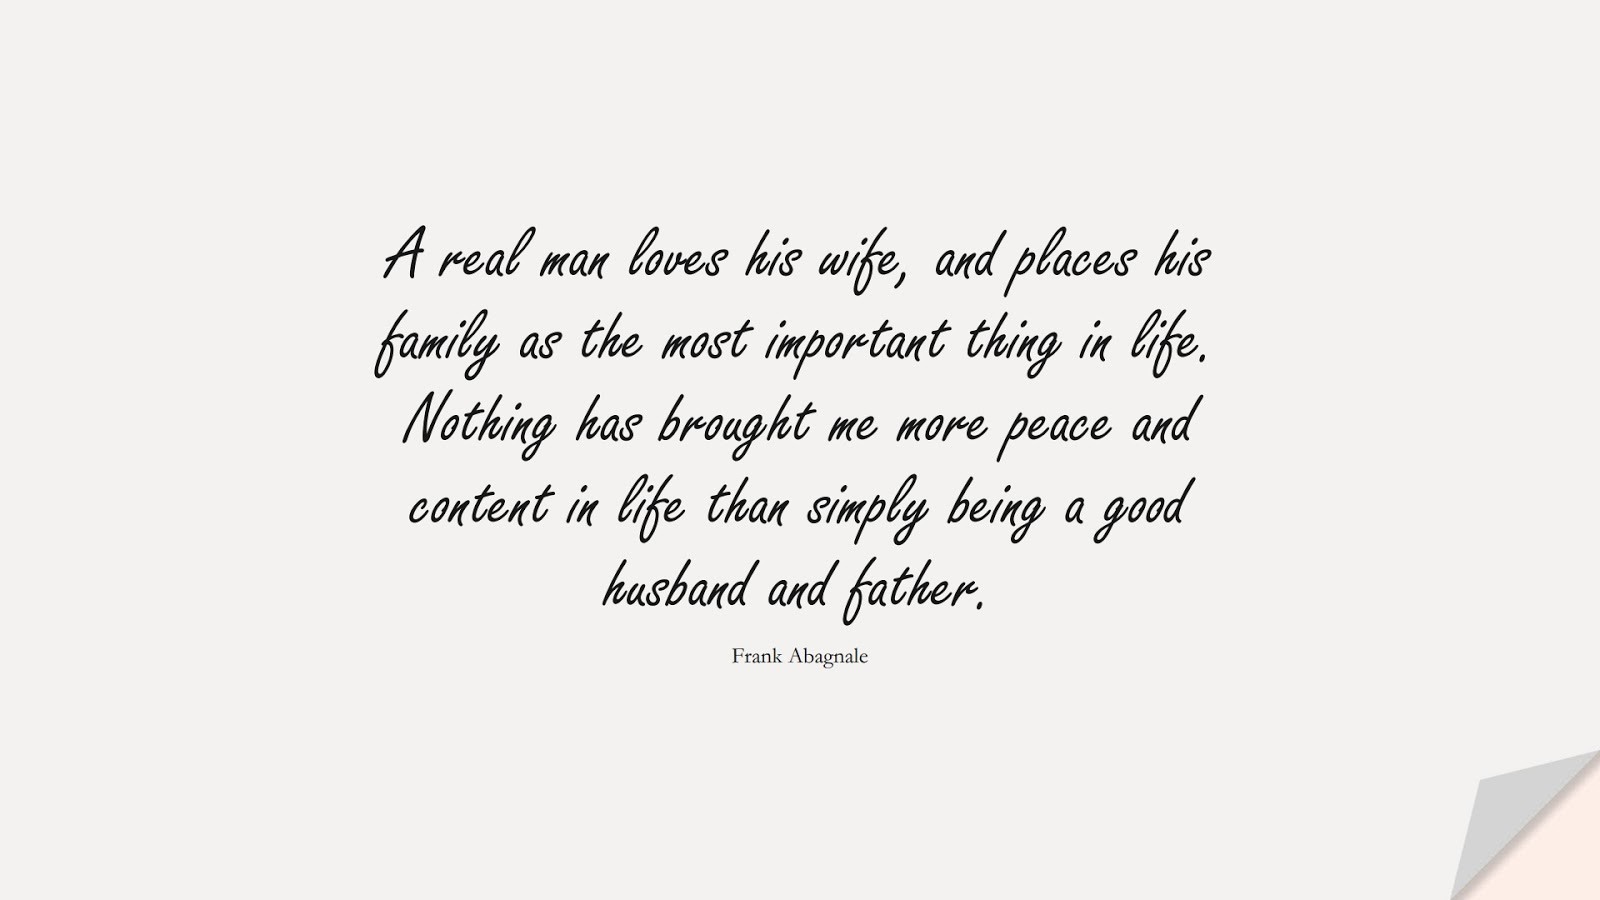 A real man loves his wife, and places his family as the most important thing in life. Nothing has brought me more peace and content in life than simply being a good husband and father. (Frank Abagnale);  #FamilyQuotes